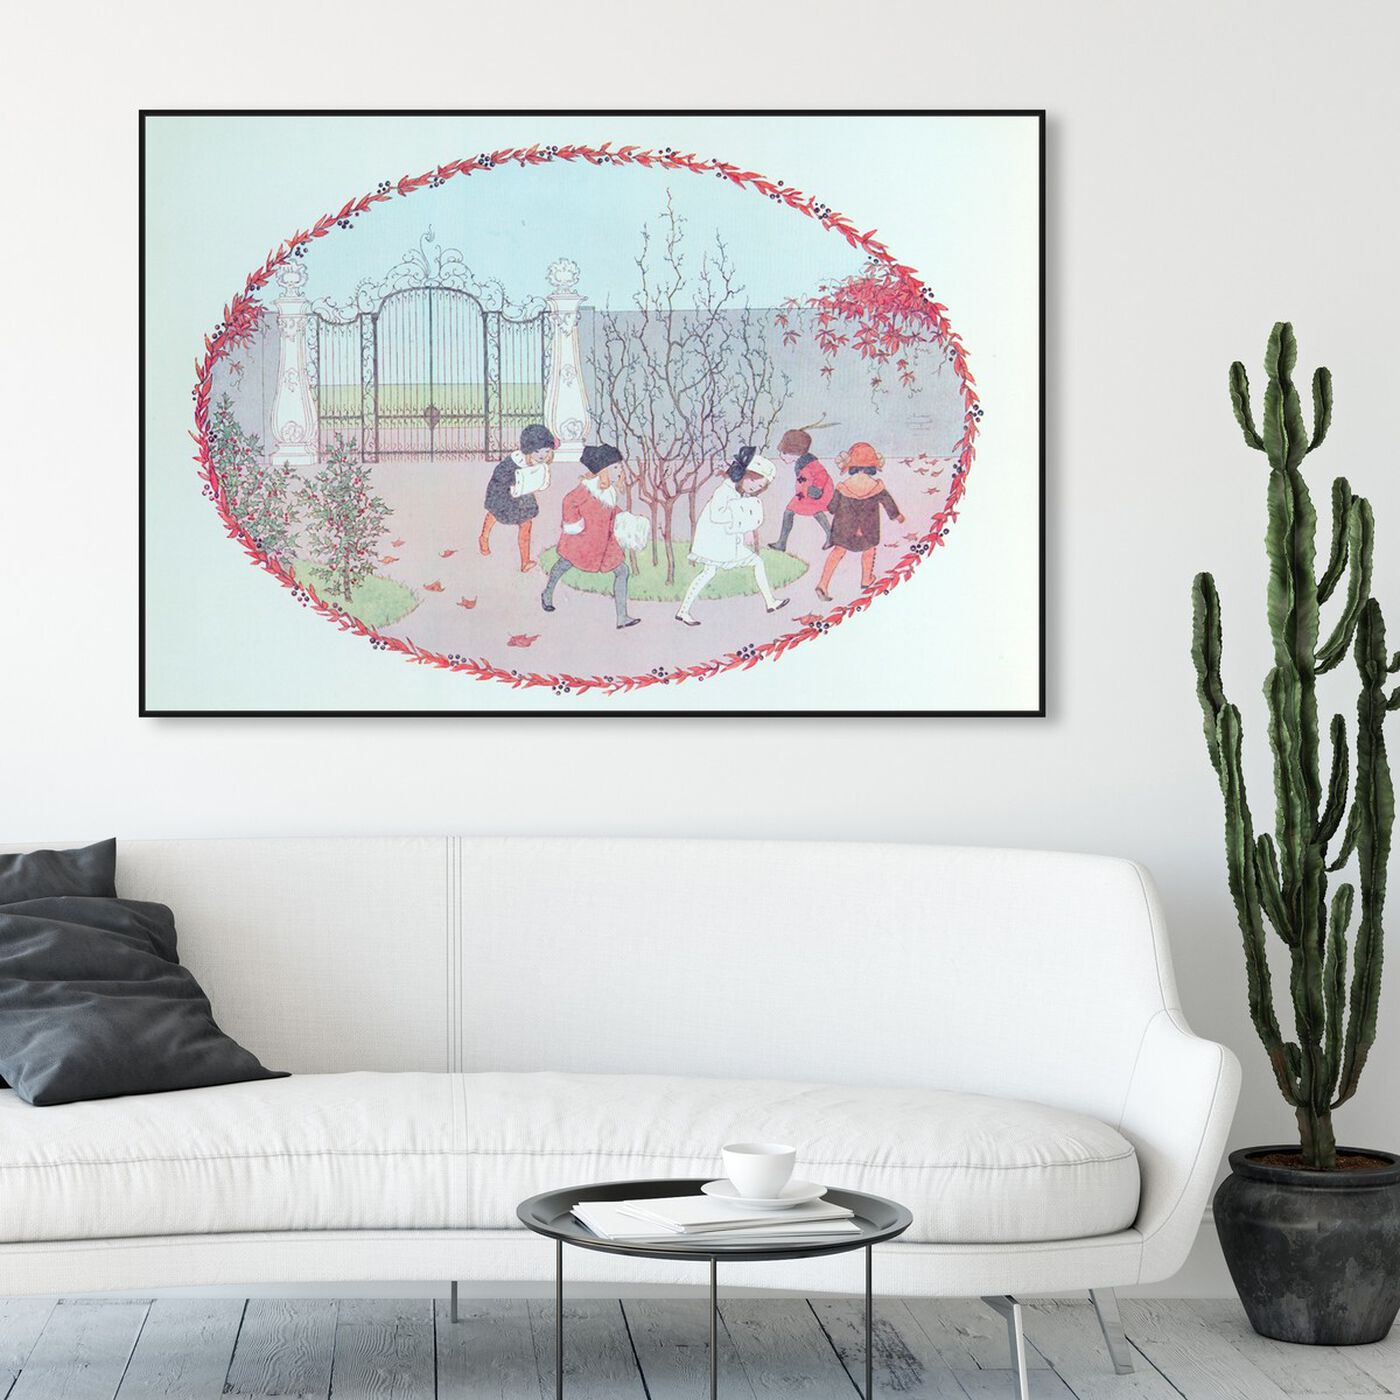 Hanging view of Mulberry Bush featuring entertainment and hobbies and parks art.